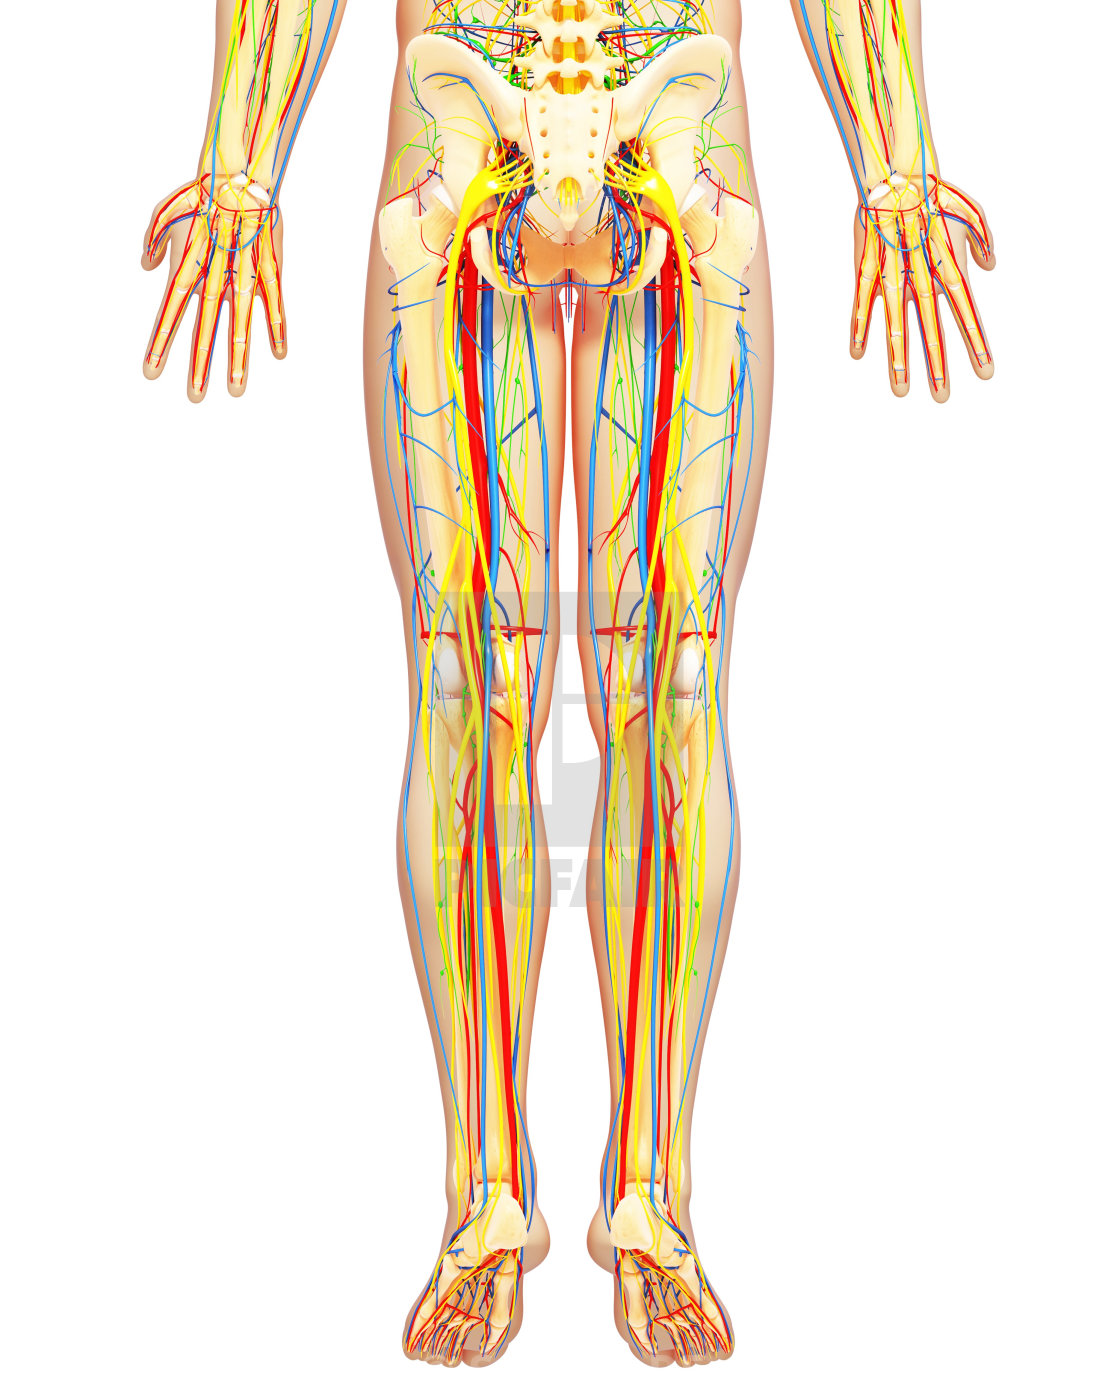 Lower Body Anatomy Artwork License Download Or Print For 3900